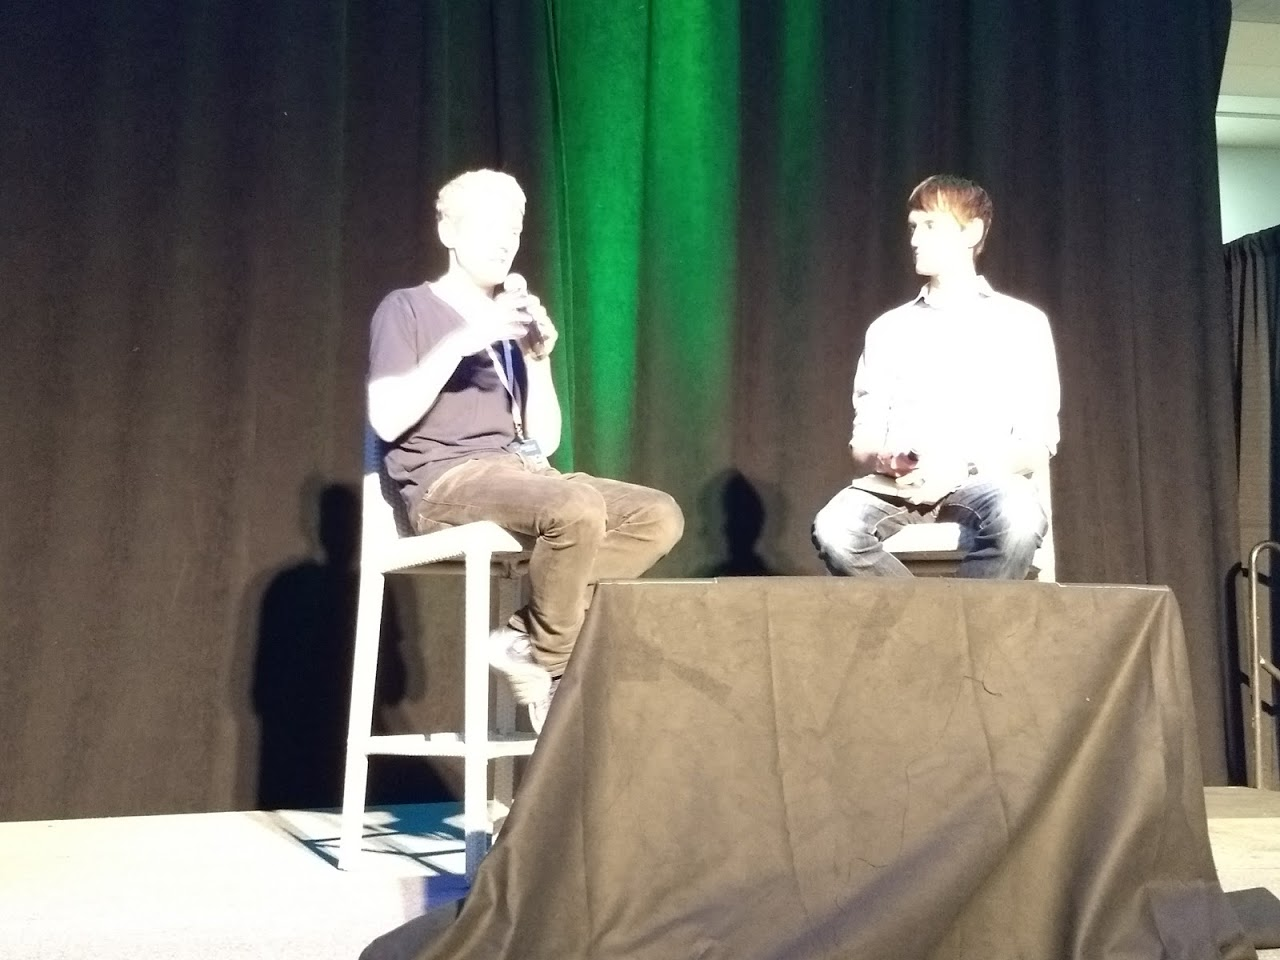 Patrick Collison & Rob Walling @ microConf 2018